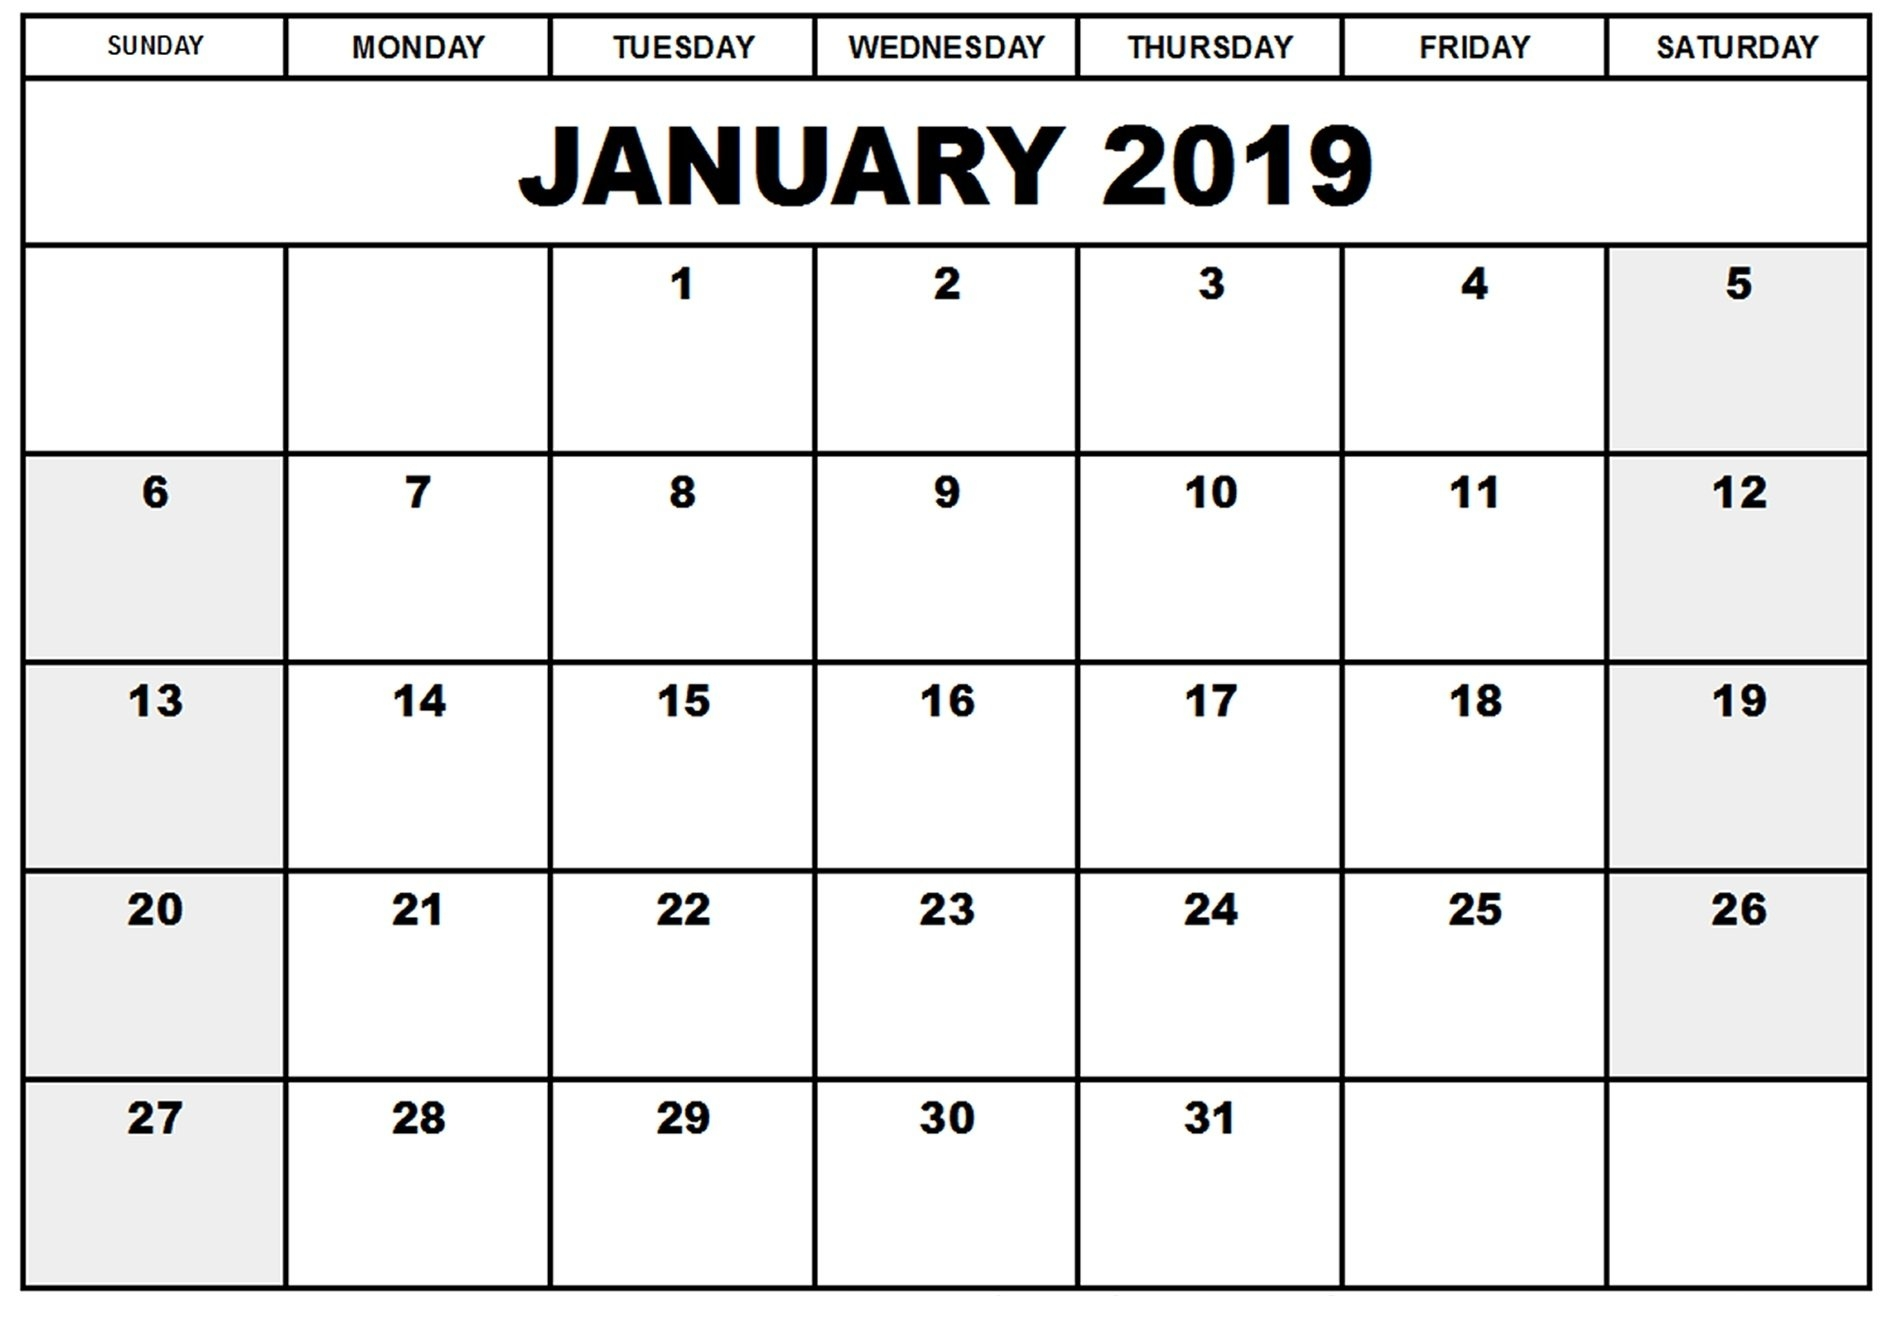 January 2019 Calendar Printable With Holidays | Printable Calendar Calendar 2019 January With Holidays